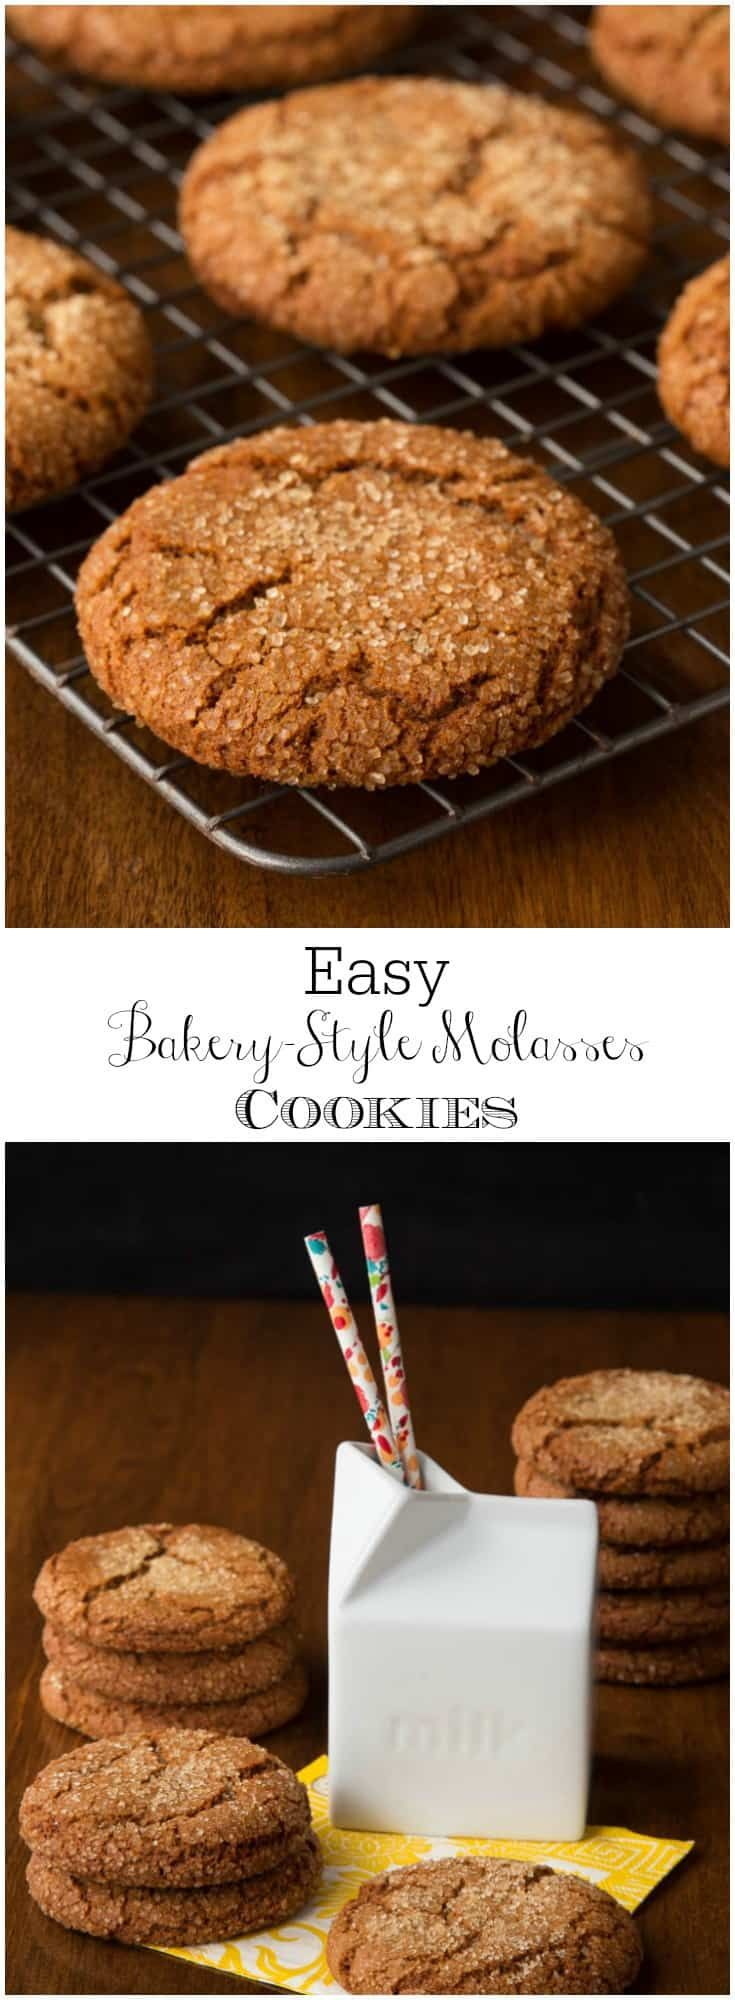 Just like the cookies you find in a fine bakery, except you can mix the dough up in one bowl in just ten minutes - and they cost WAY less!